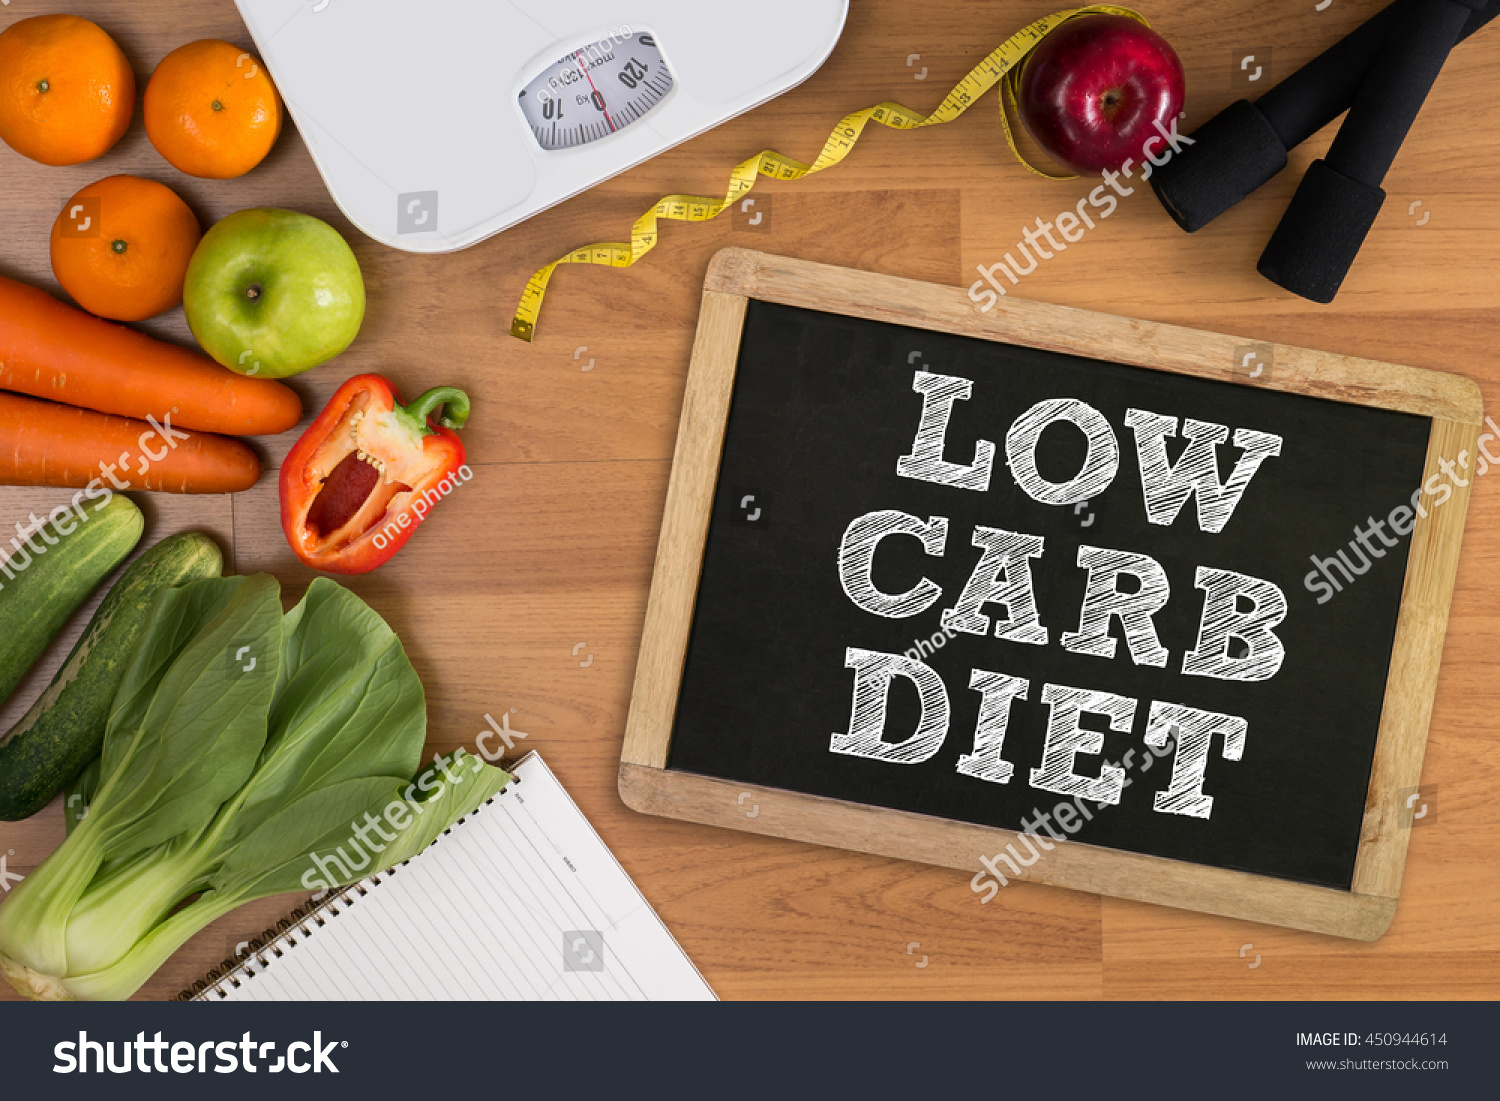 LOW CARB DIET Fitness and weight loss concept, dumbbells, white scale, fruit and tape measure on a wooden table, top view, free copy space #450944614